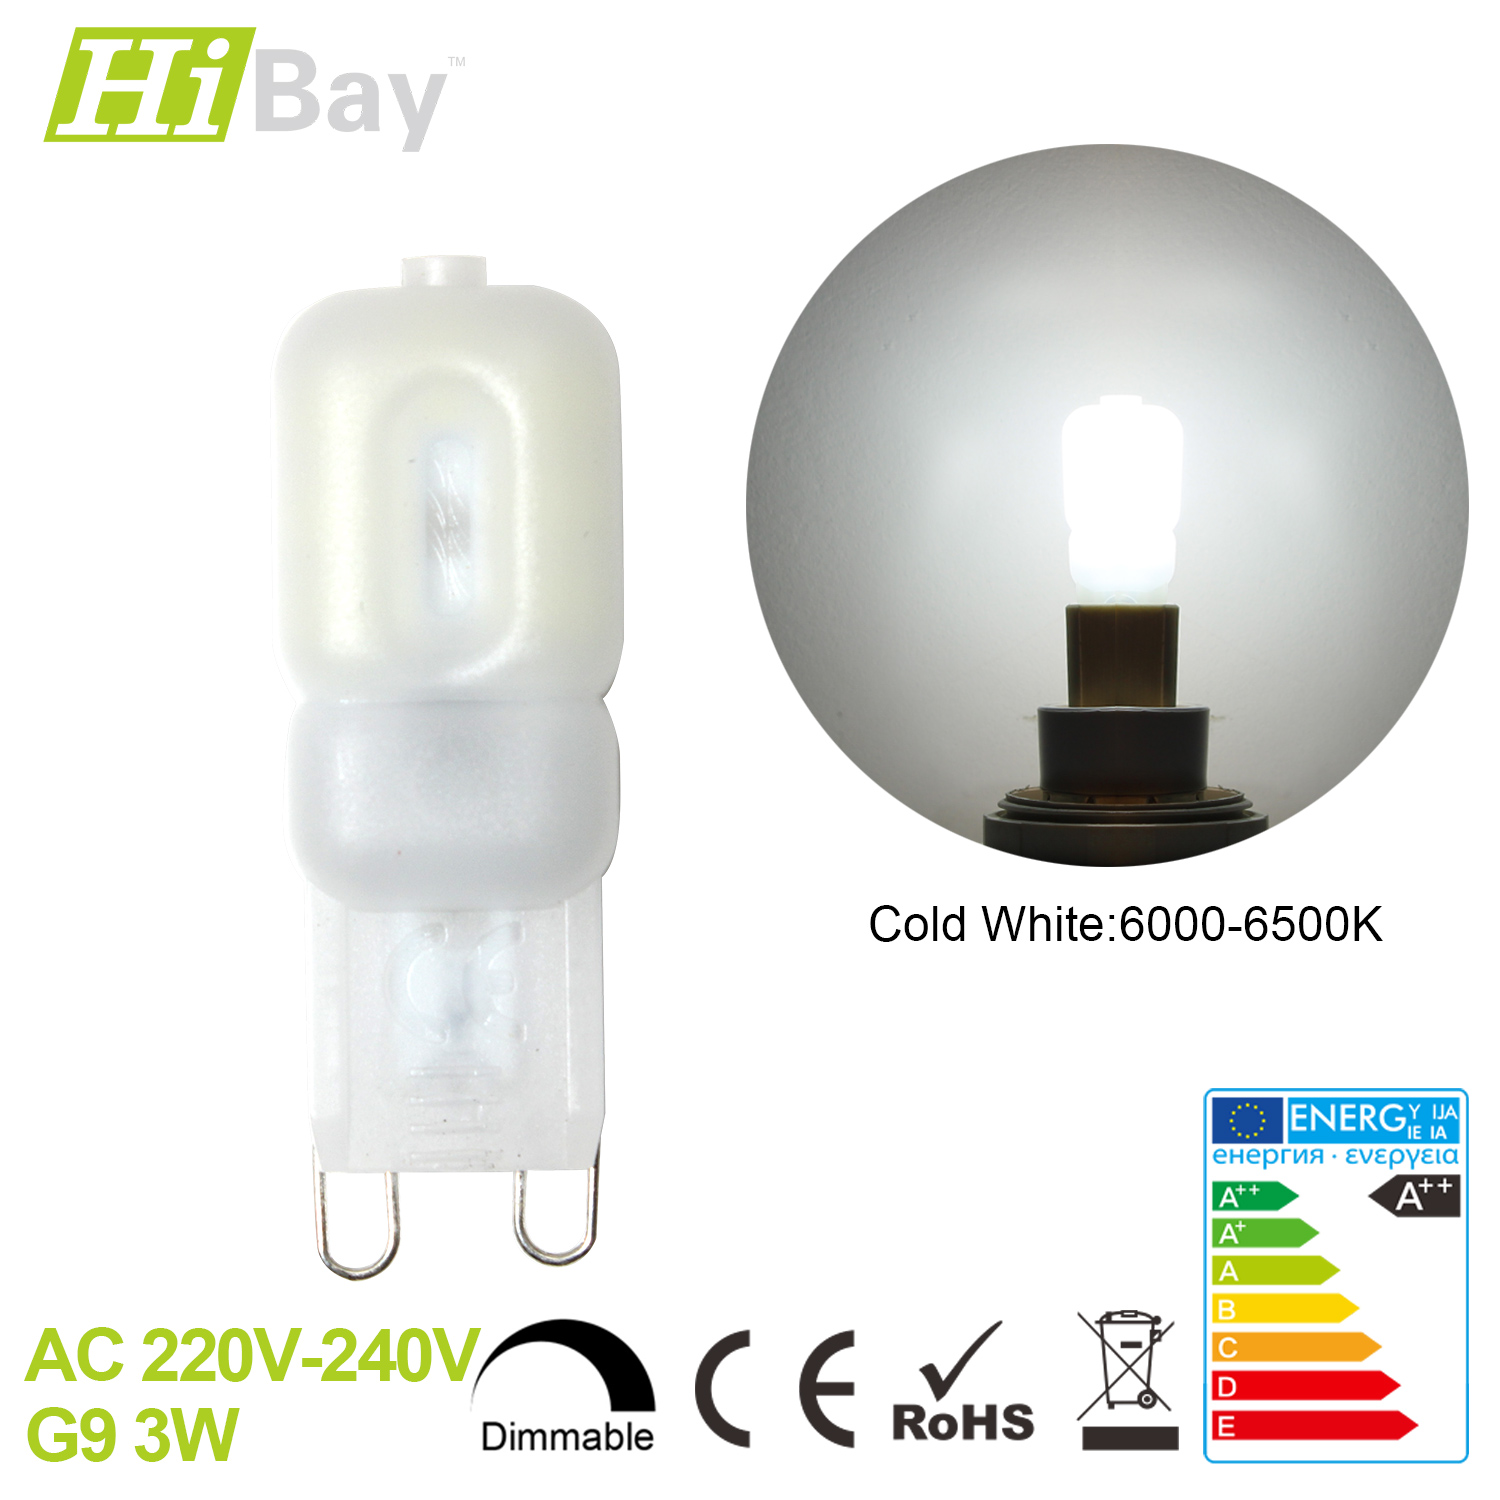 g9 3w 5w mini led light bulb capsule chandelier lamp dimmable or not 220 240v uk ebay. Black Bedroom Furniture Sets. Home Design Ideas